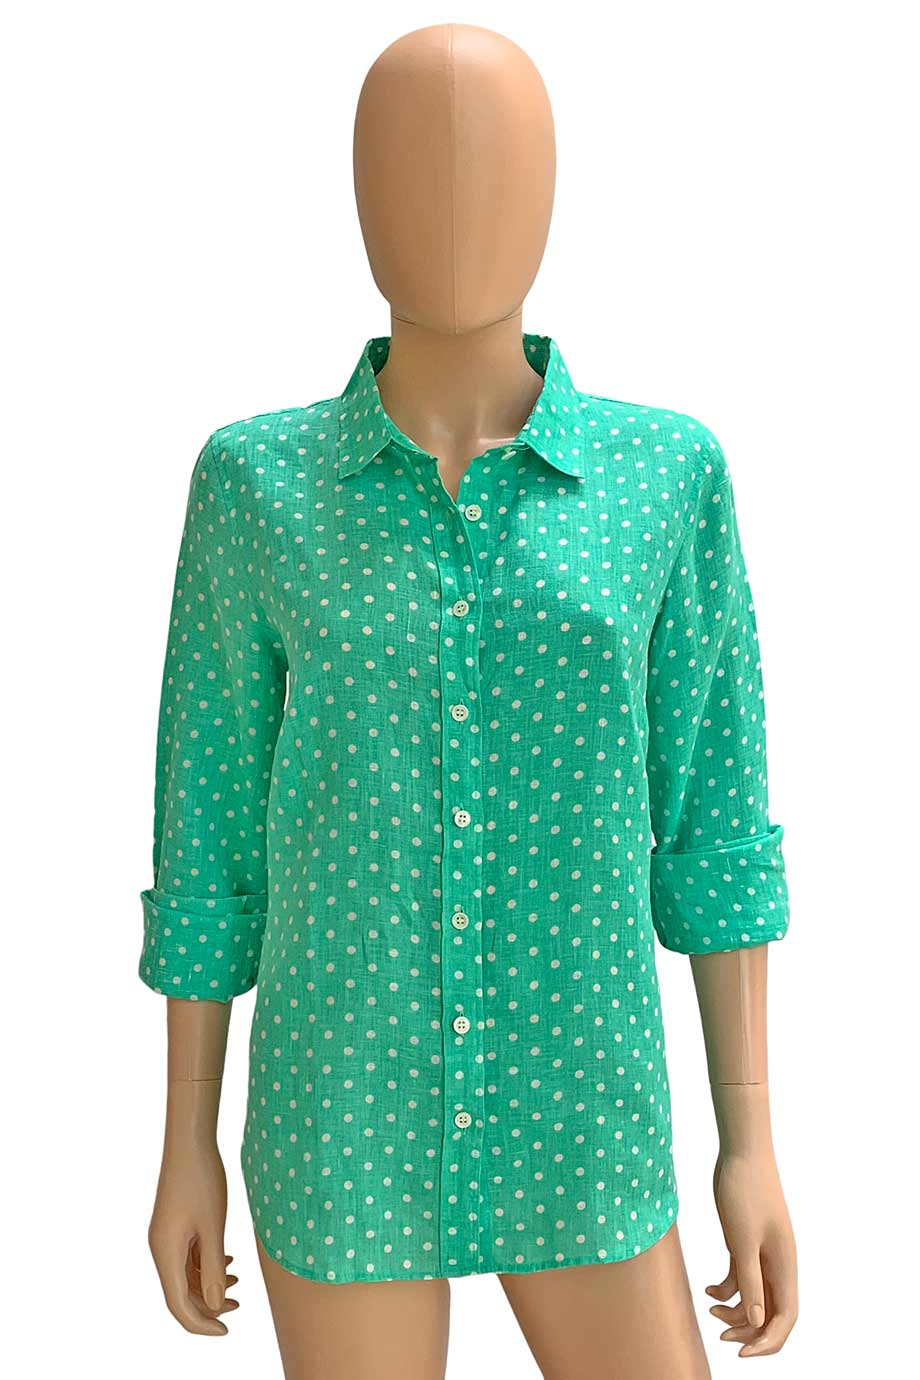 J Crew Polka Dot Linen Long Sleeve Button Front Perfect Shirt / Sz 6